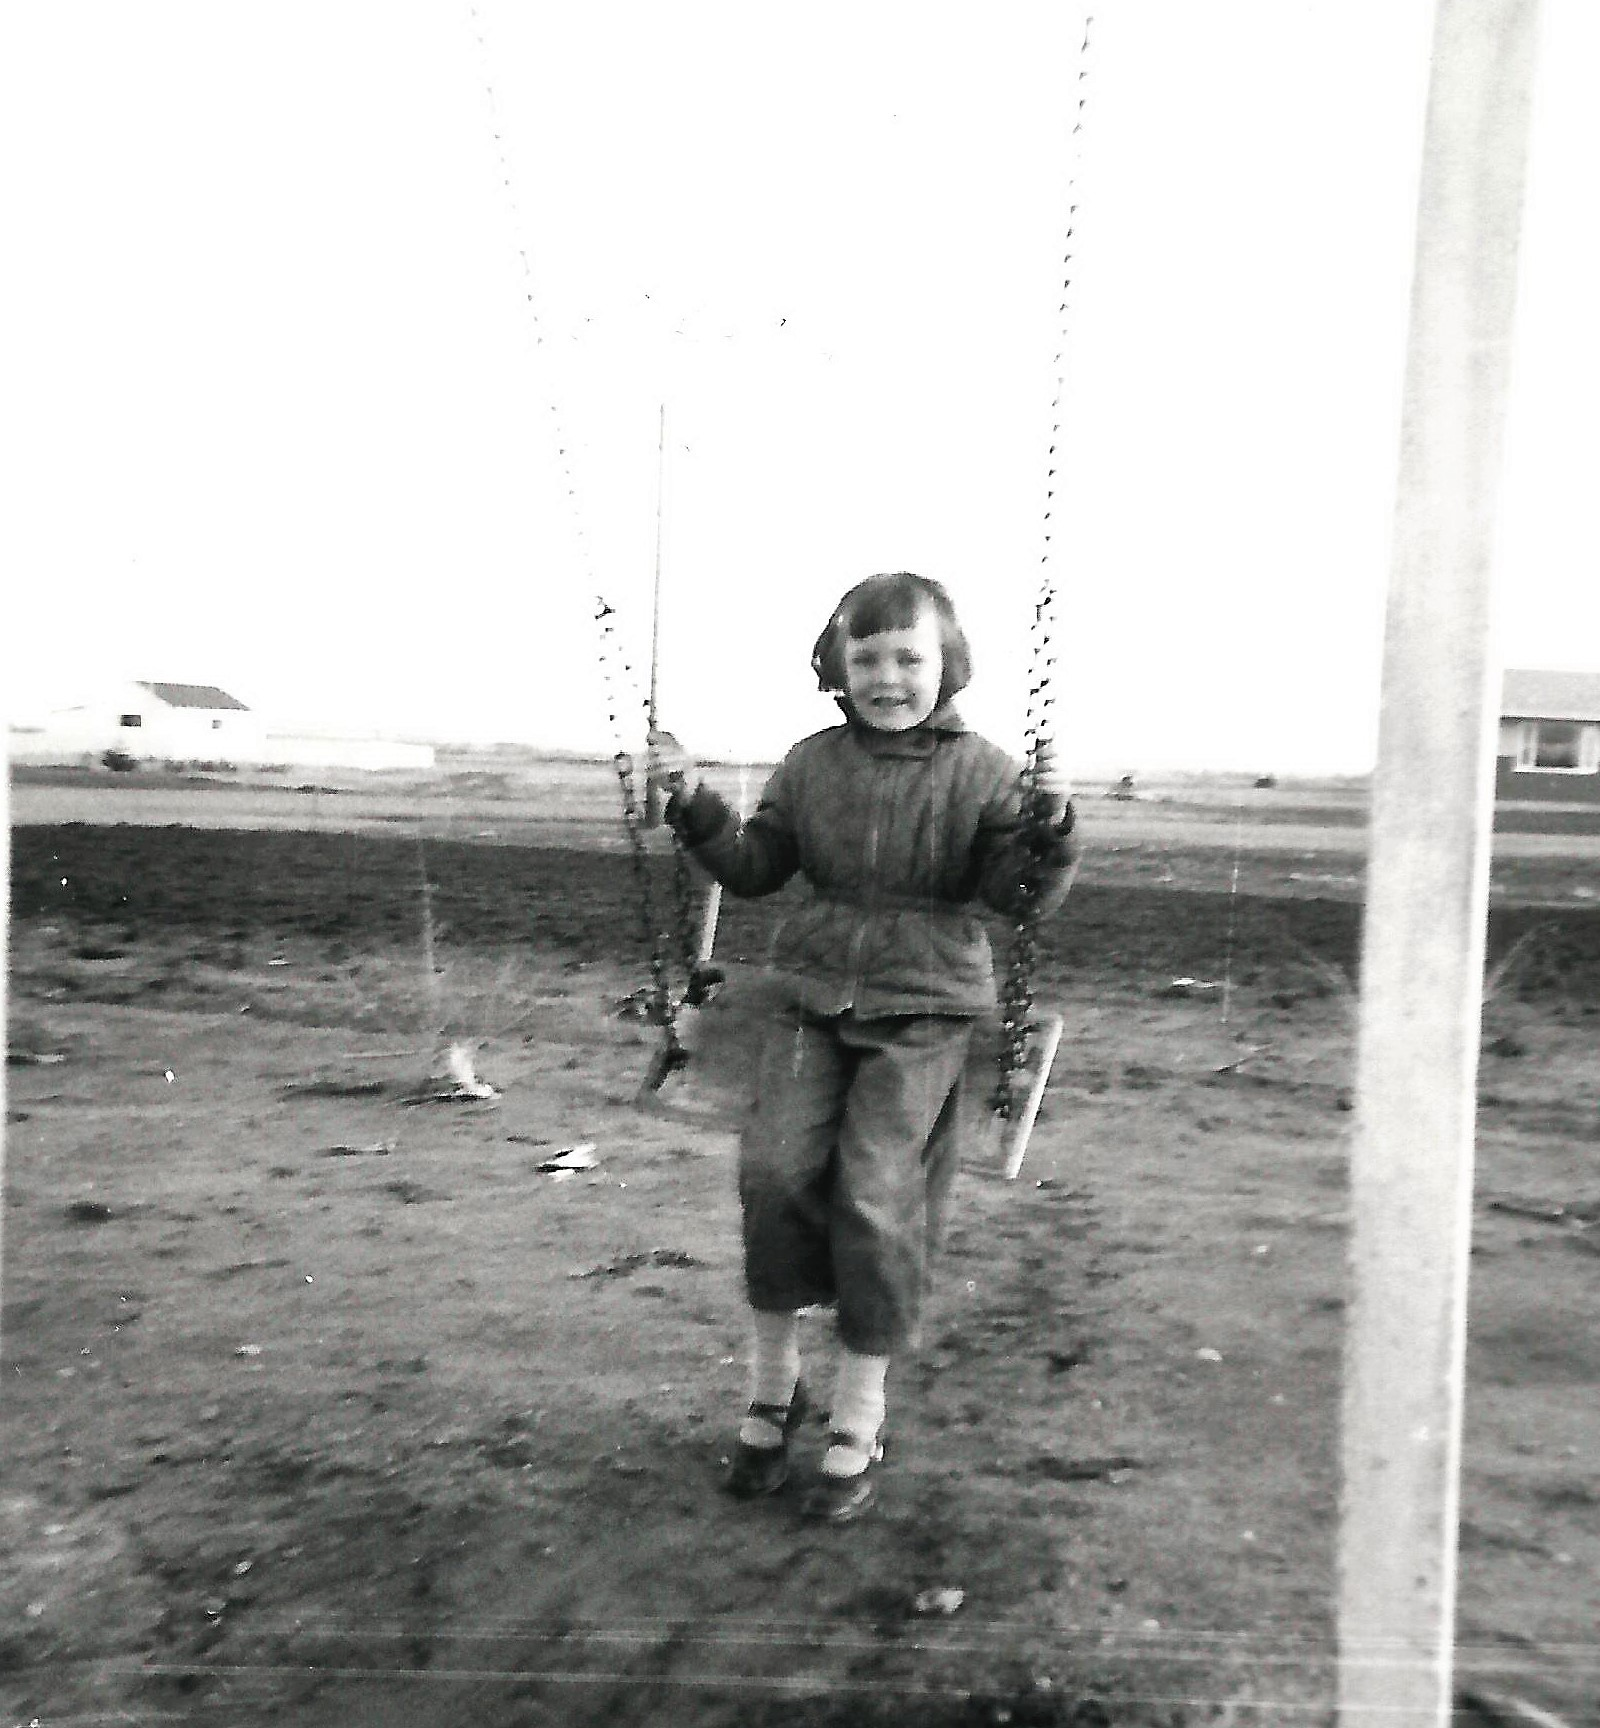 Leslie MacLachlan on baclyard swing 1956 (Wills house on right)William's garden behind Leslie and Ortona st. (2)